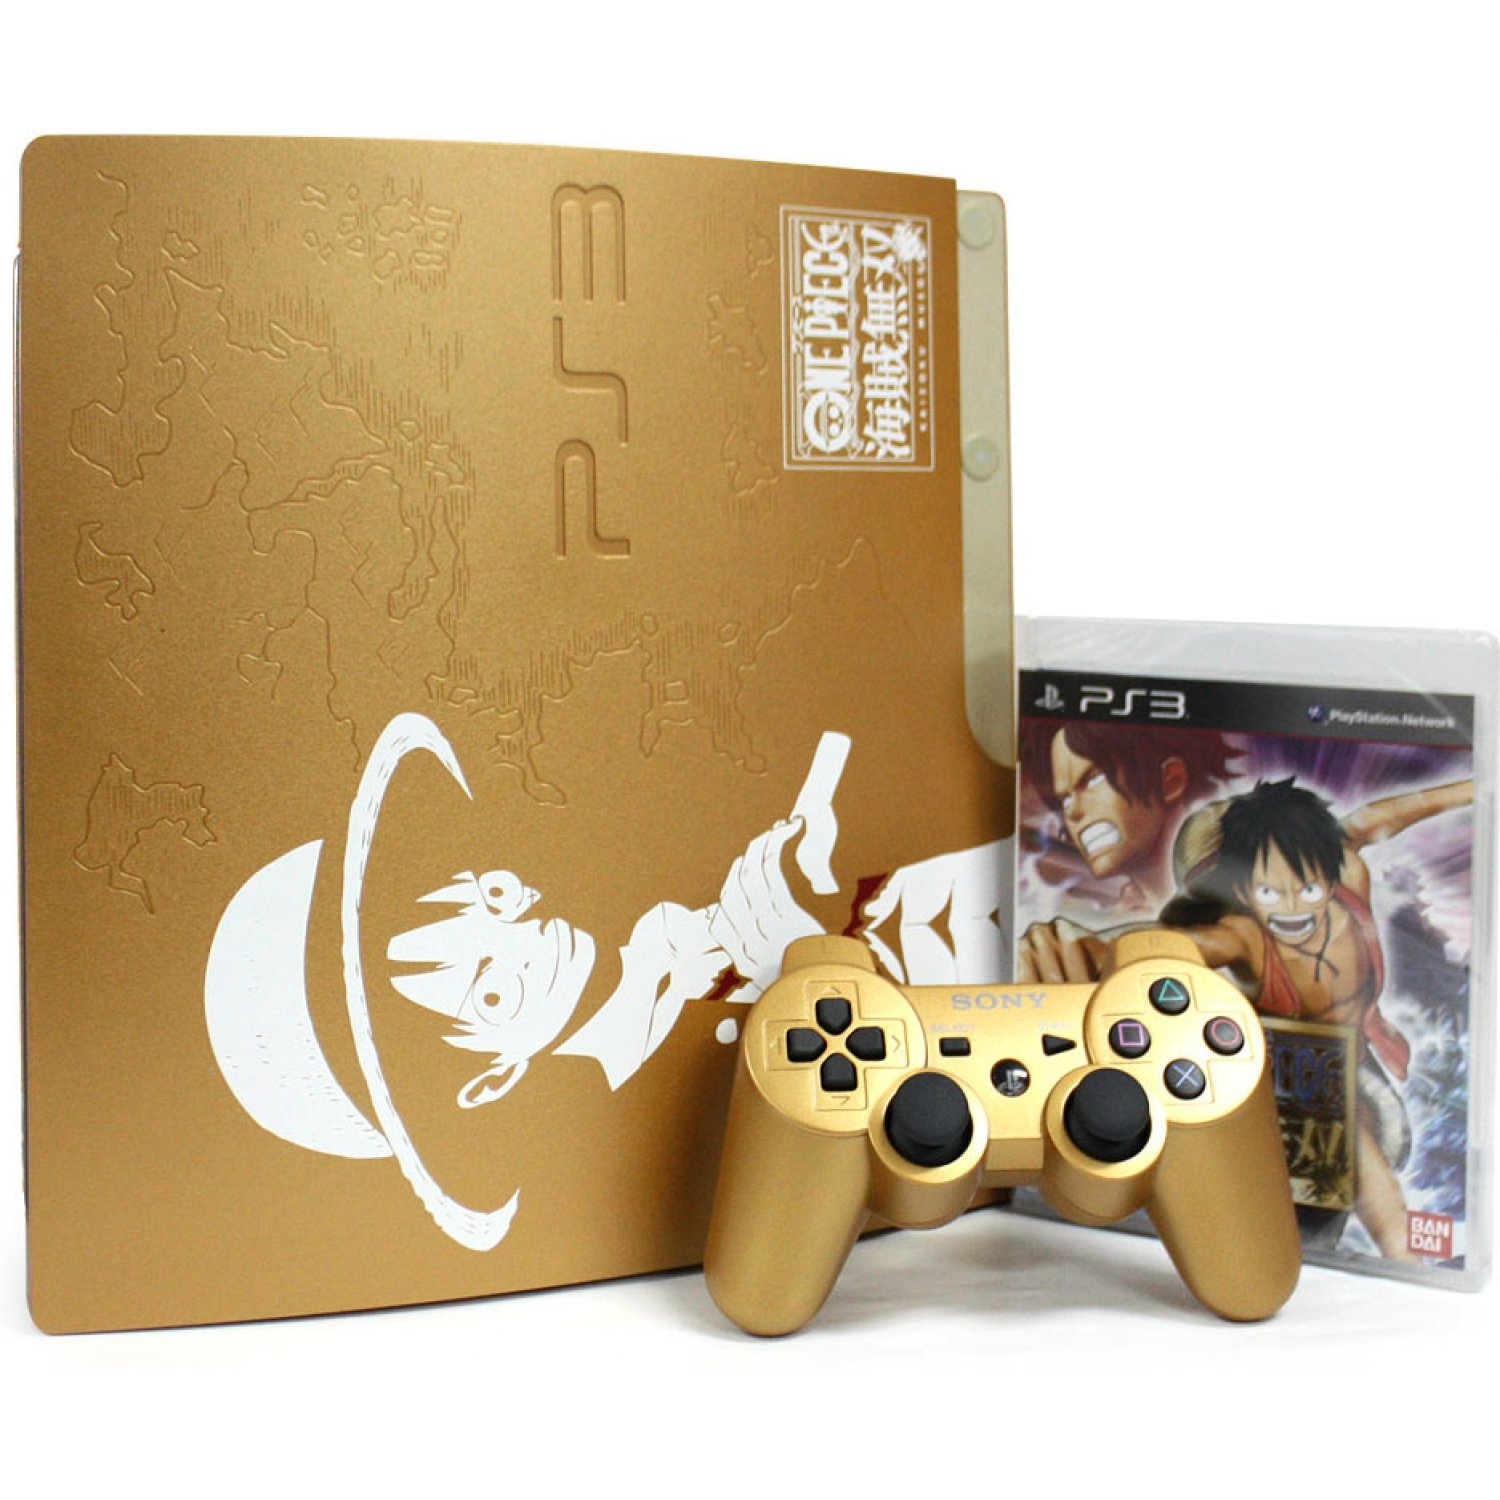 Playstation3 Slim Console One Piece Kaizoku Musou Gold Edition Hdd 320gb Model 110v